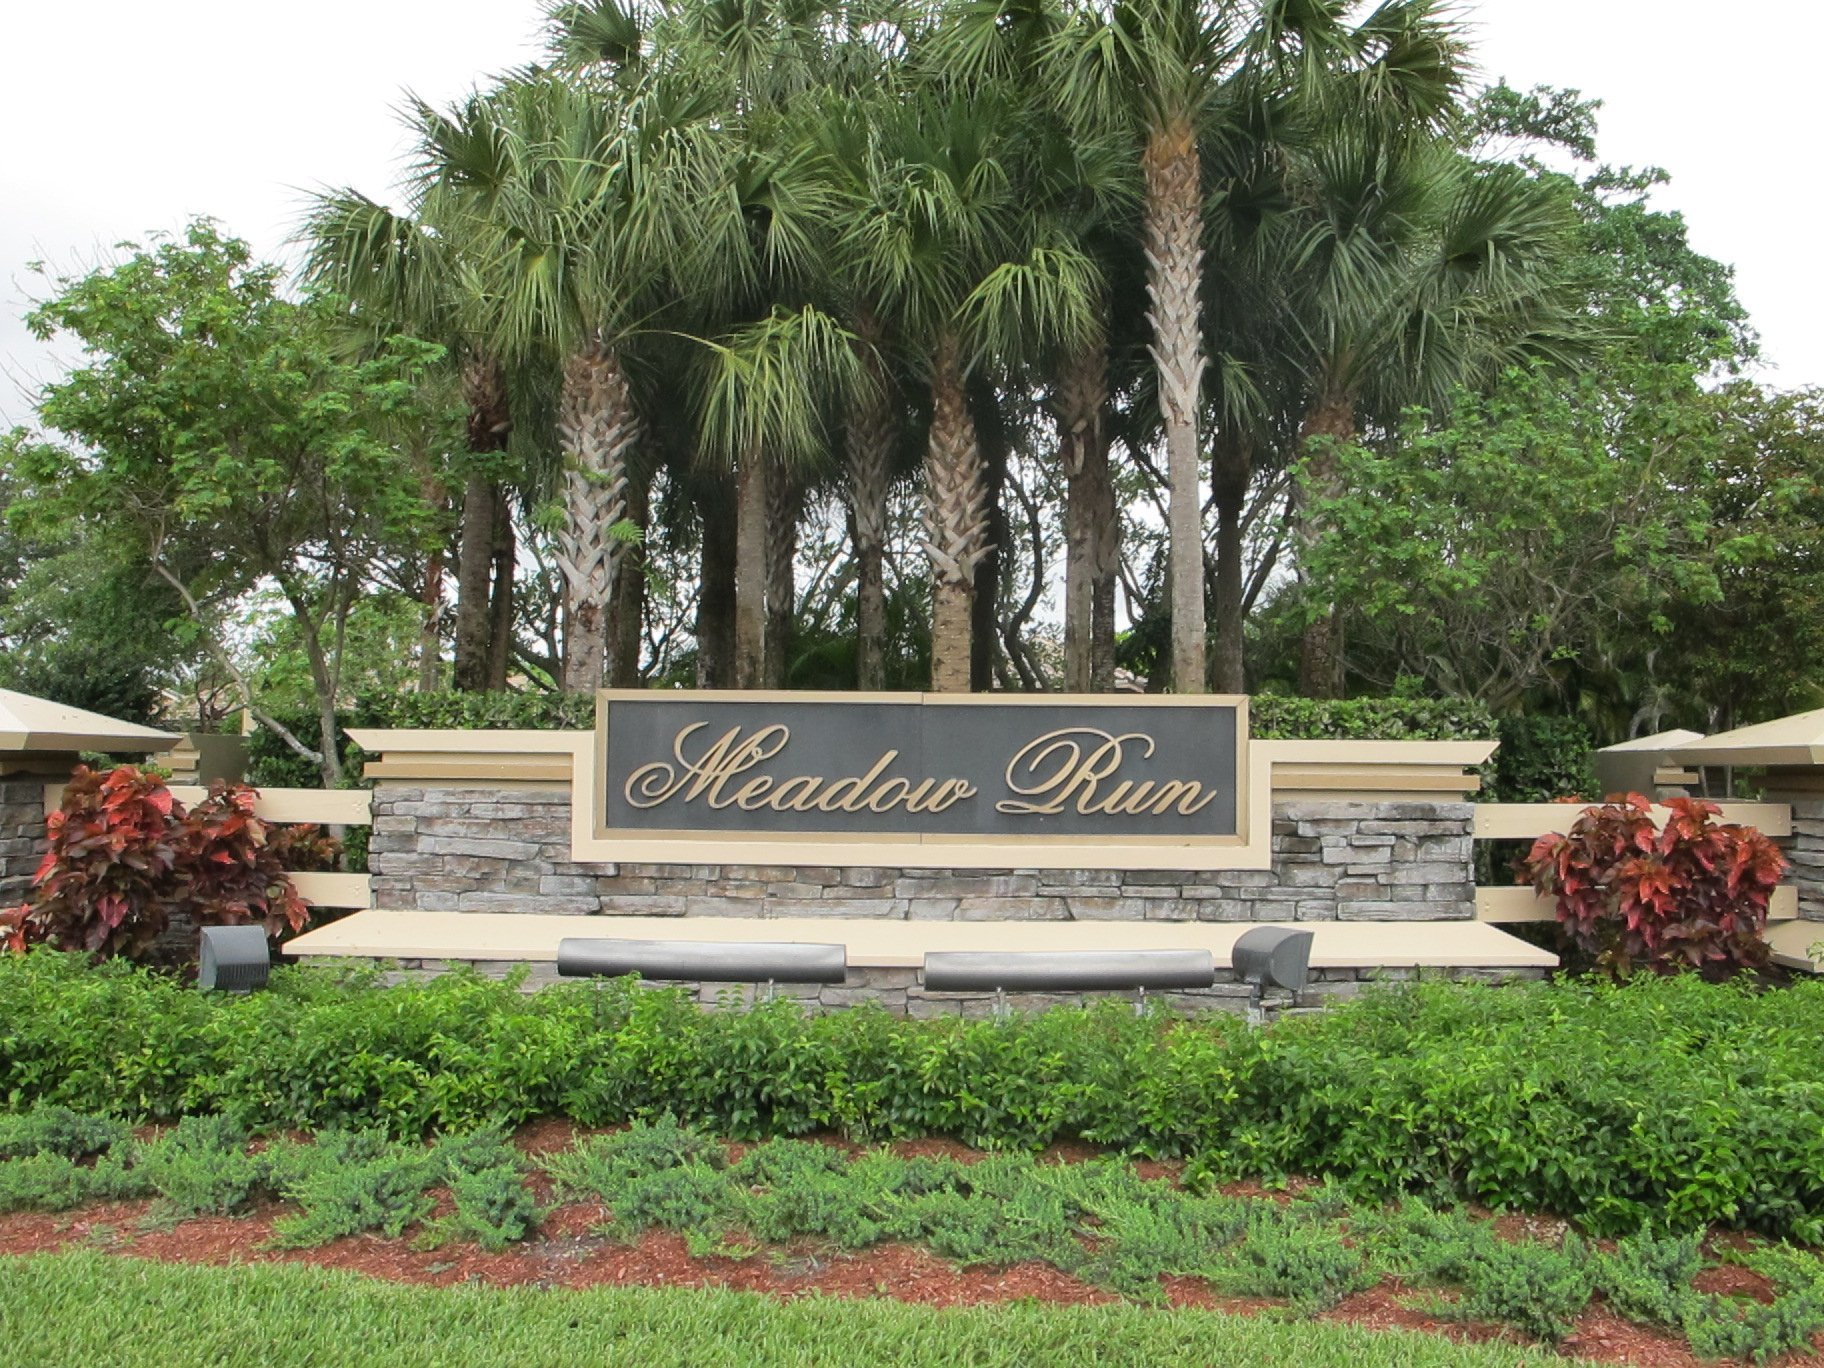 Meadow Run Parkland Homes for sale